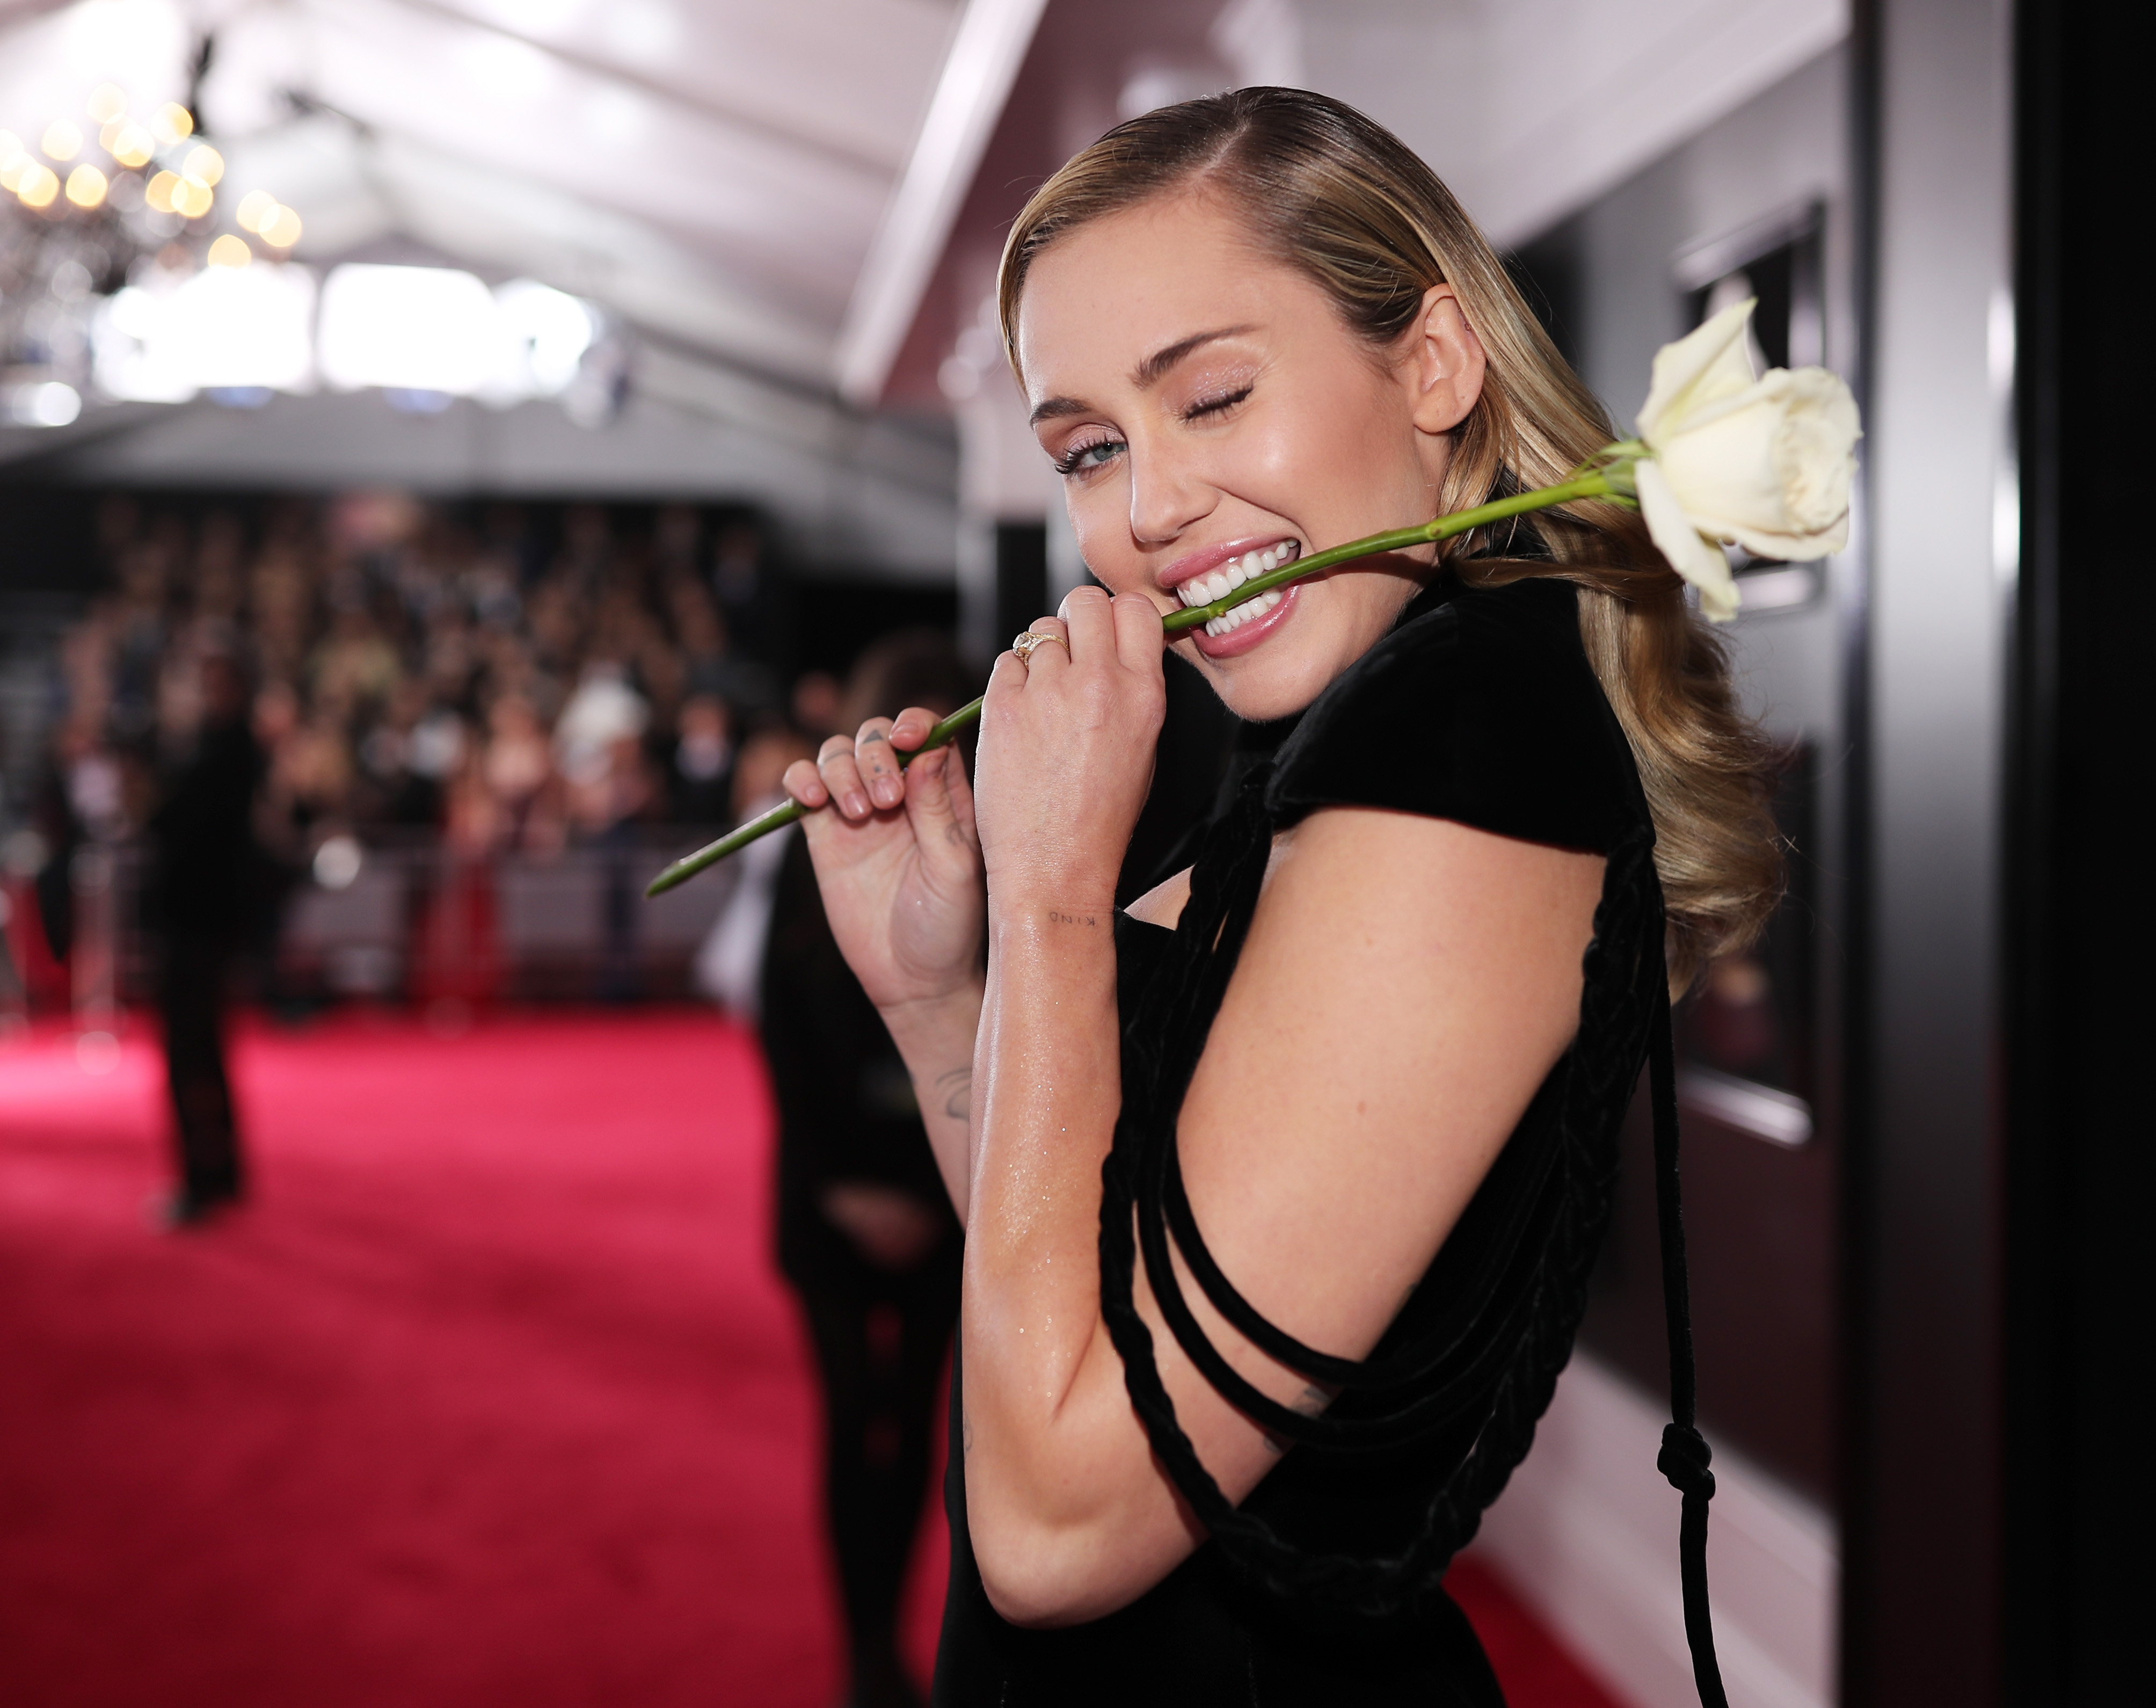 Recording artist Miley Cyrus attends the 60th Annual GRAMMY Awards at Madison Square Garden on January 28, 2018 in New York City. (Photo by Christopher Polk/Getty Images for NARAS)